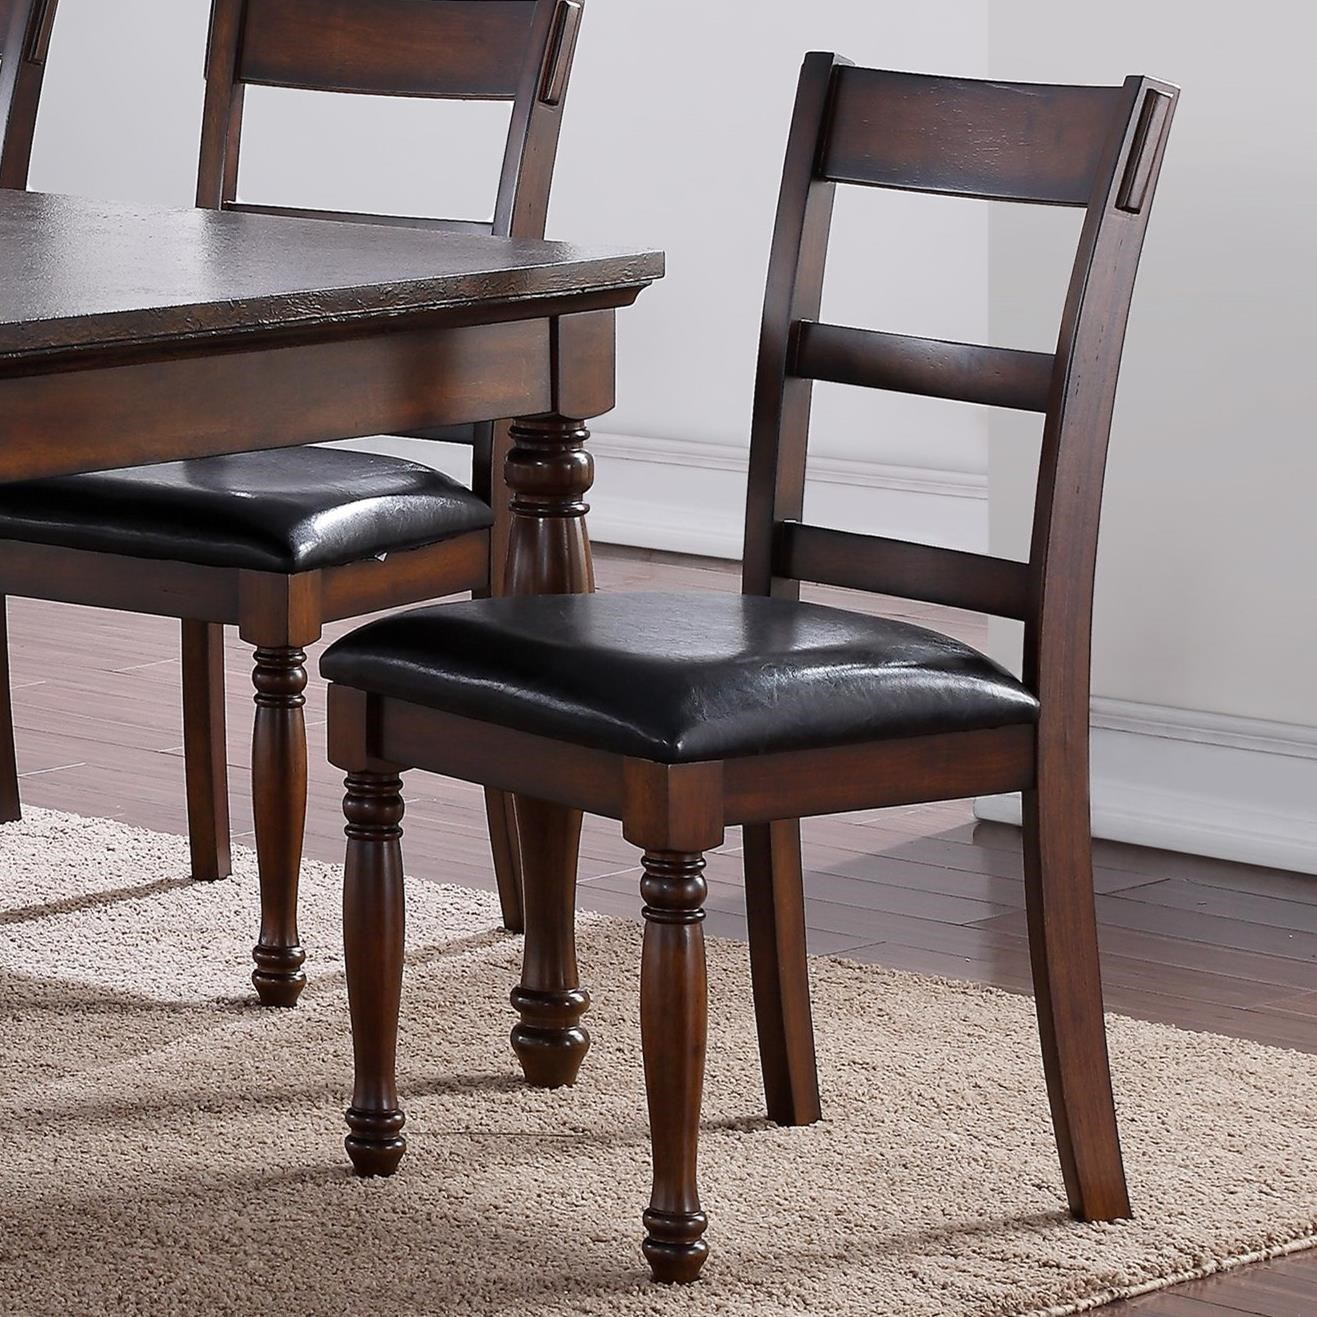 Legends Furniture Breckenridge Breckenridge Side Chair - Item Number: ZBRG-8061